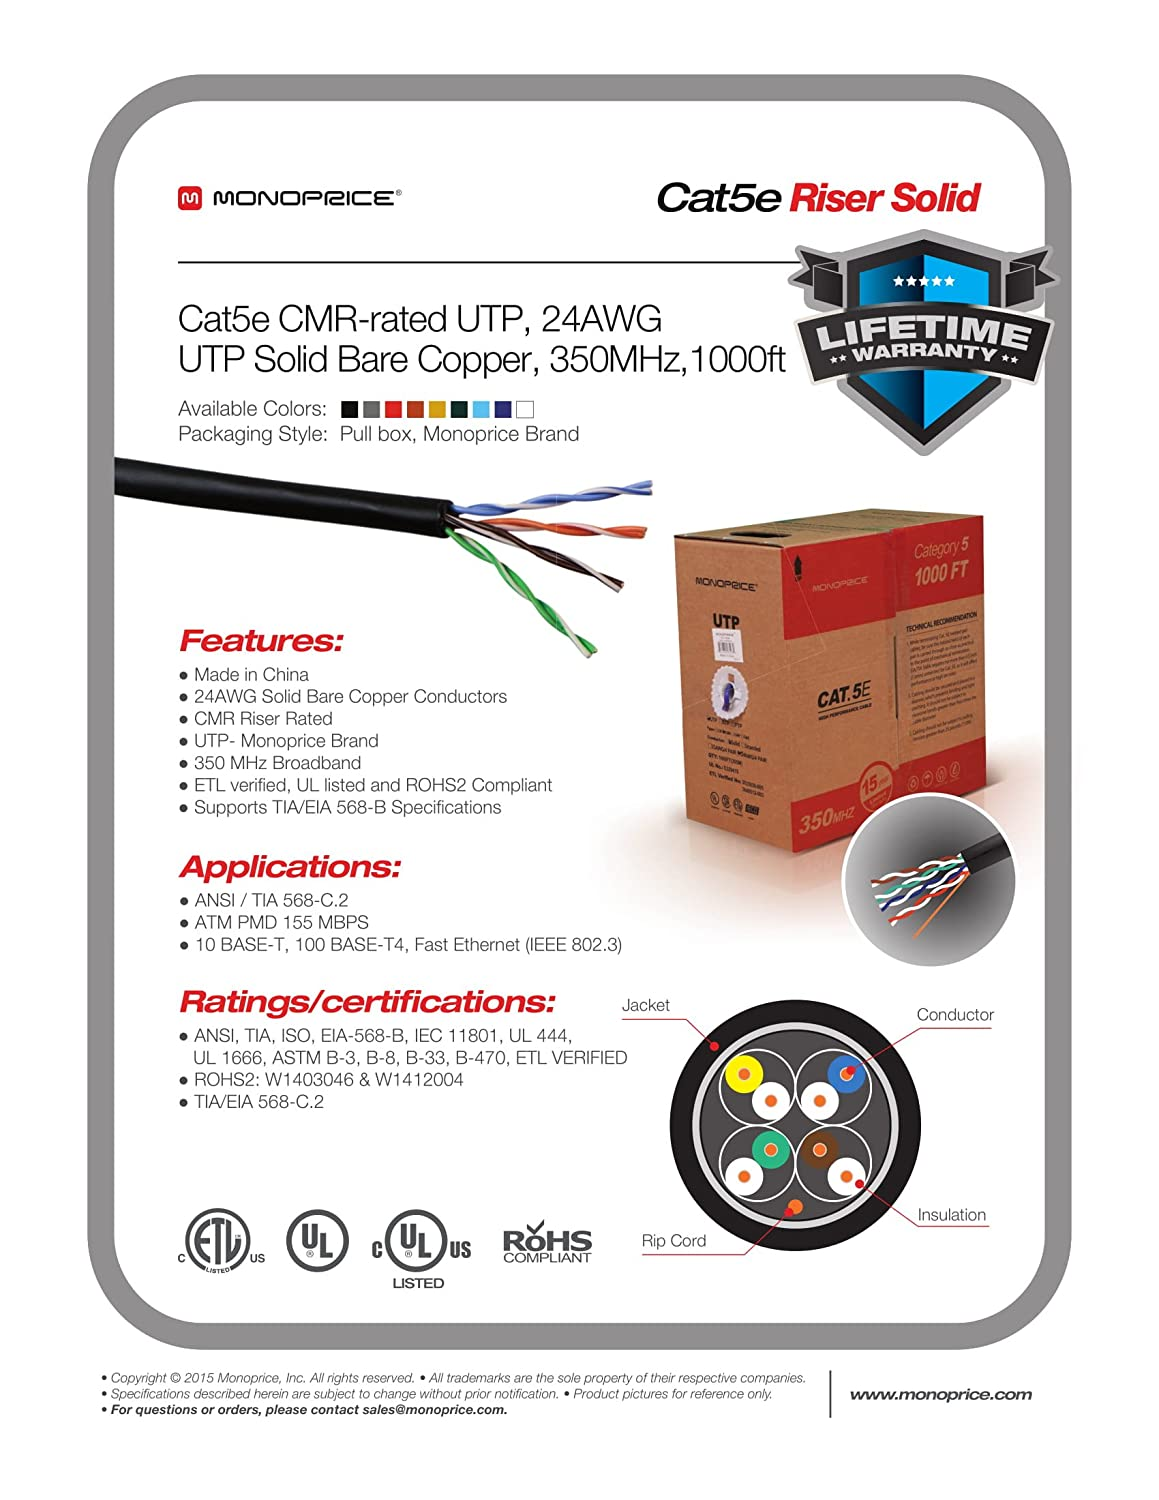 Amazon.com: Monoprice 1000FT 24AWG Cat5e 350MHz UTP Solid, Riser ...